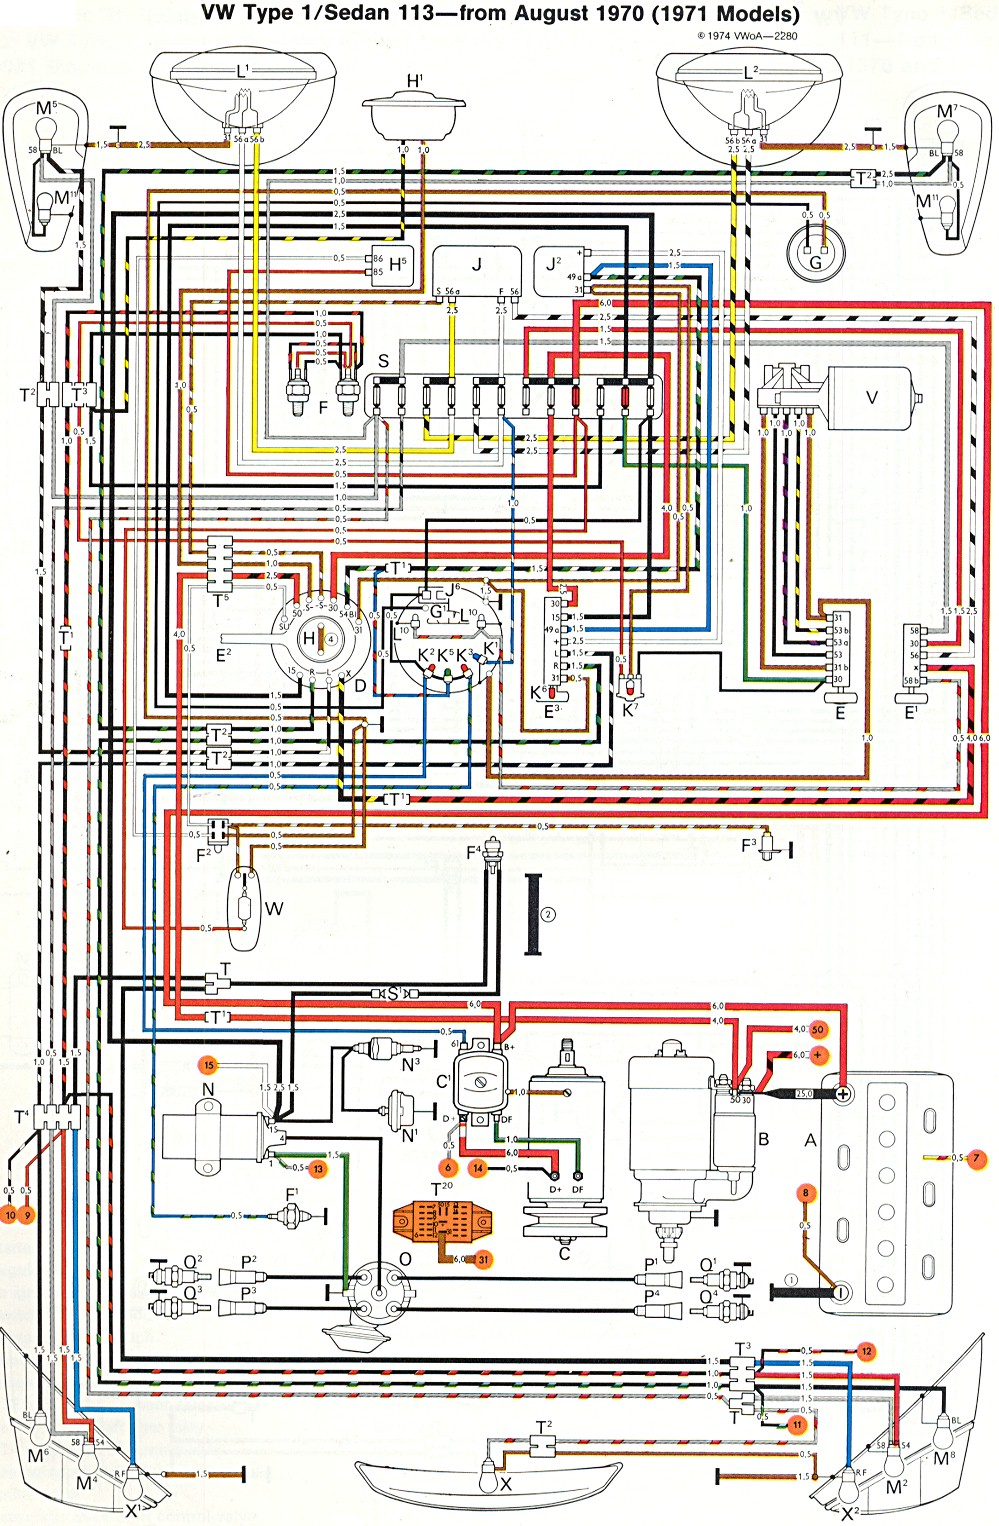 bug_super_71 2001 vw beetle wiring diagram 1964 vw beetle wiring diagram 2002 vw beetle wiring diagram at soozxer.org